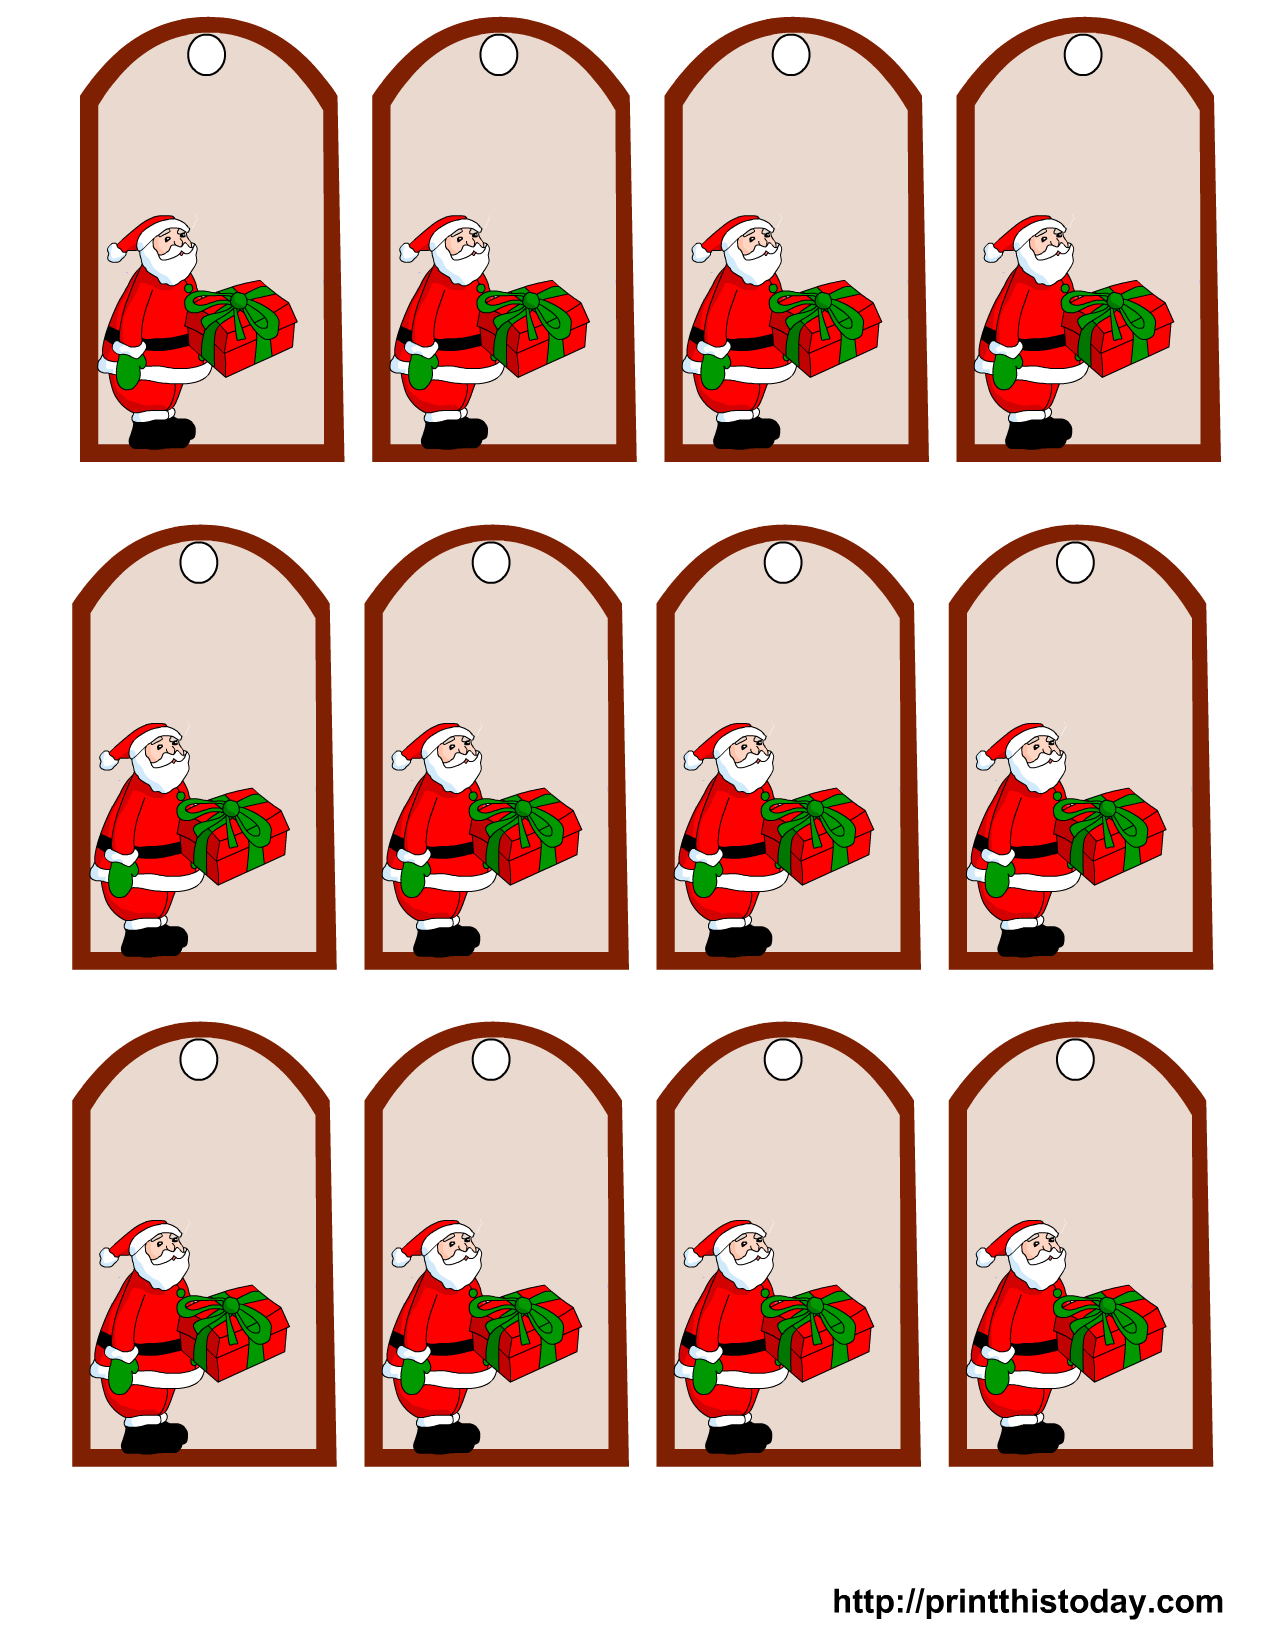 4 Images of Printable Christmas Gifts